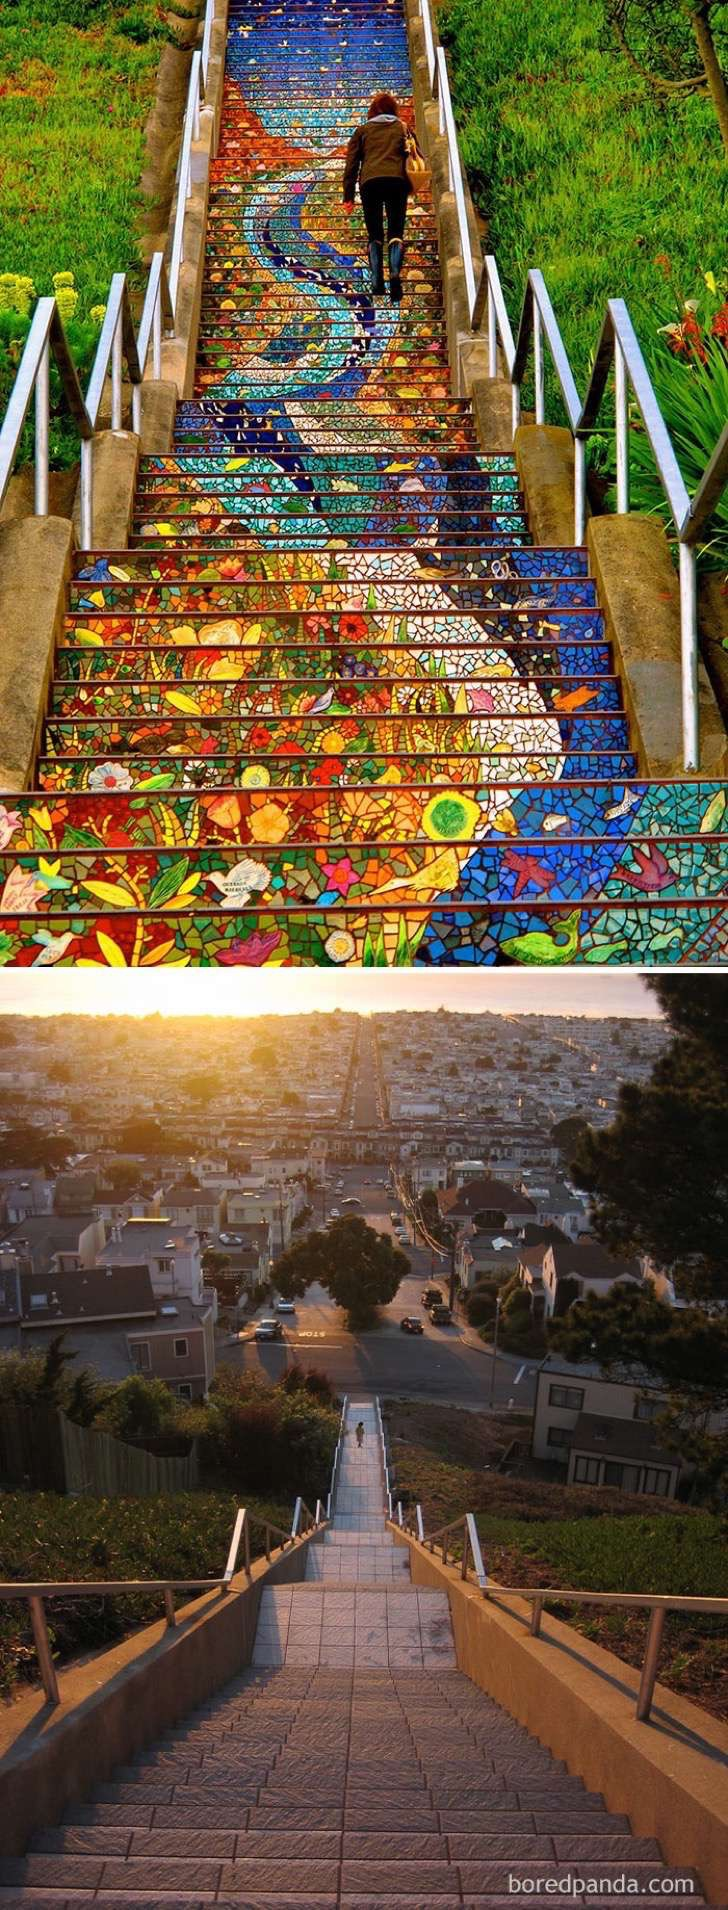 before-after-street-art-boring-wall-transformation-74-580f57fbe7be6__700-2